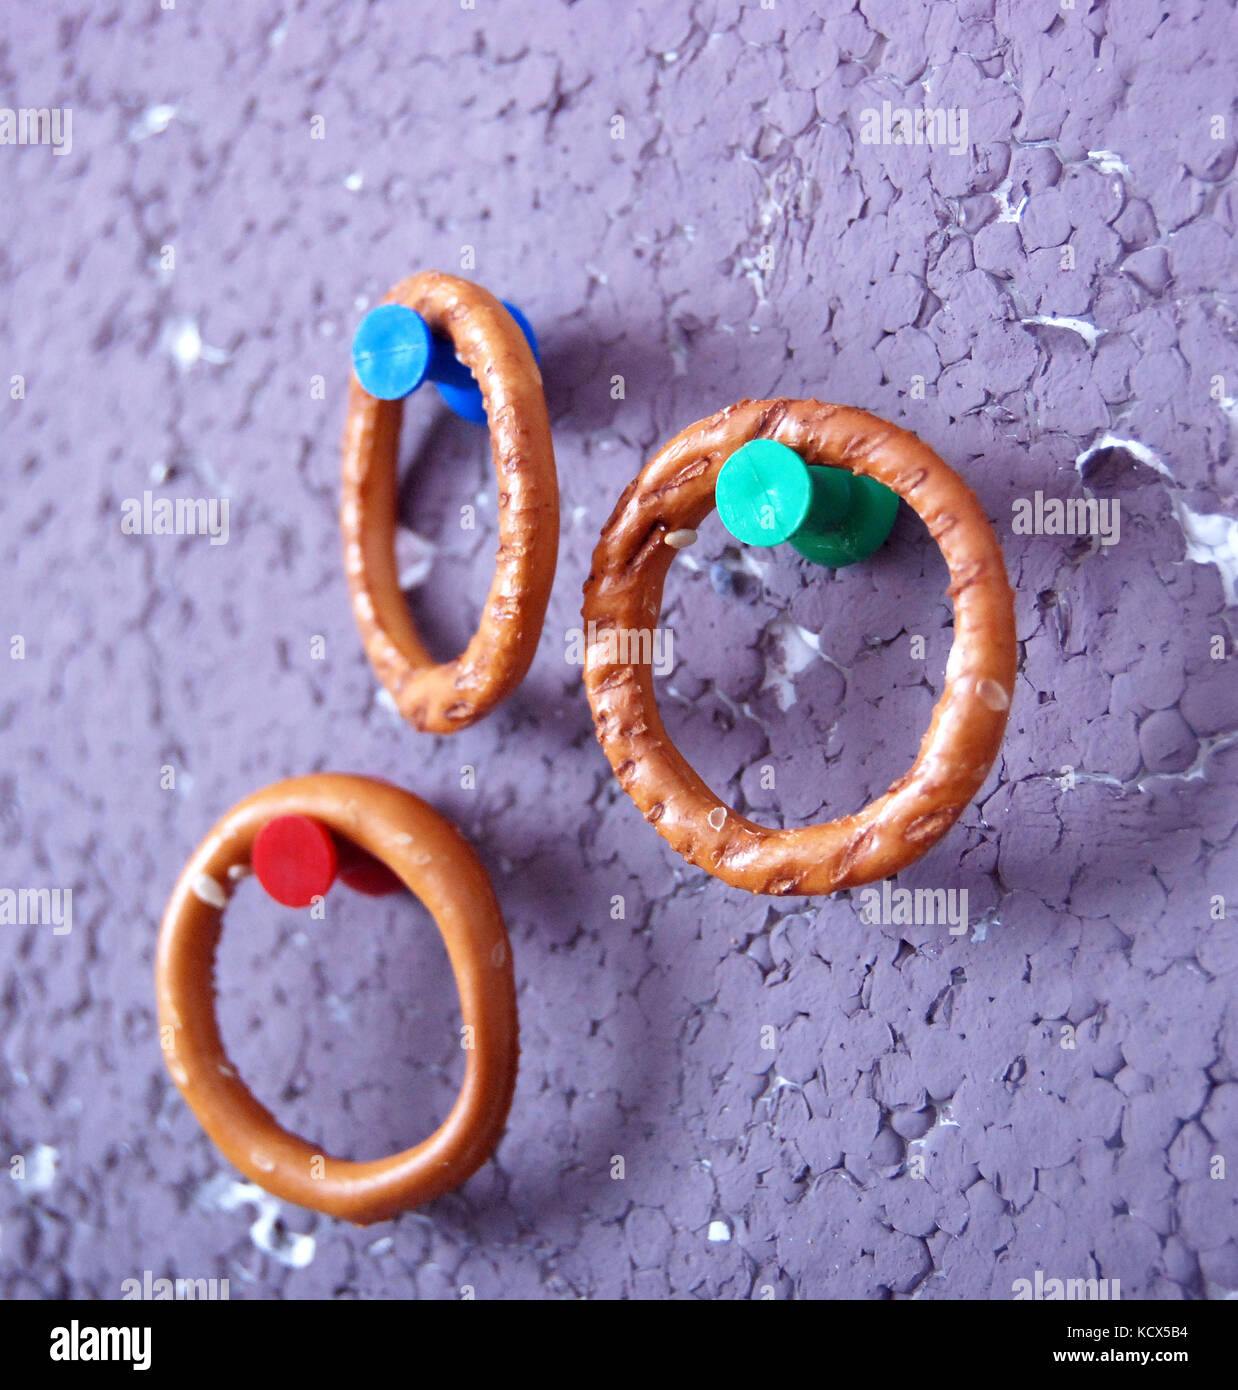 Picture of a ring crackers hanged on a pushpin - Stock Image